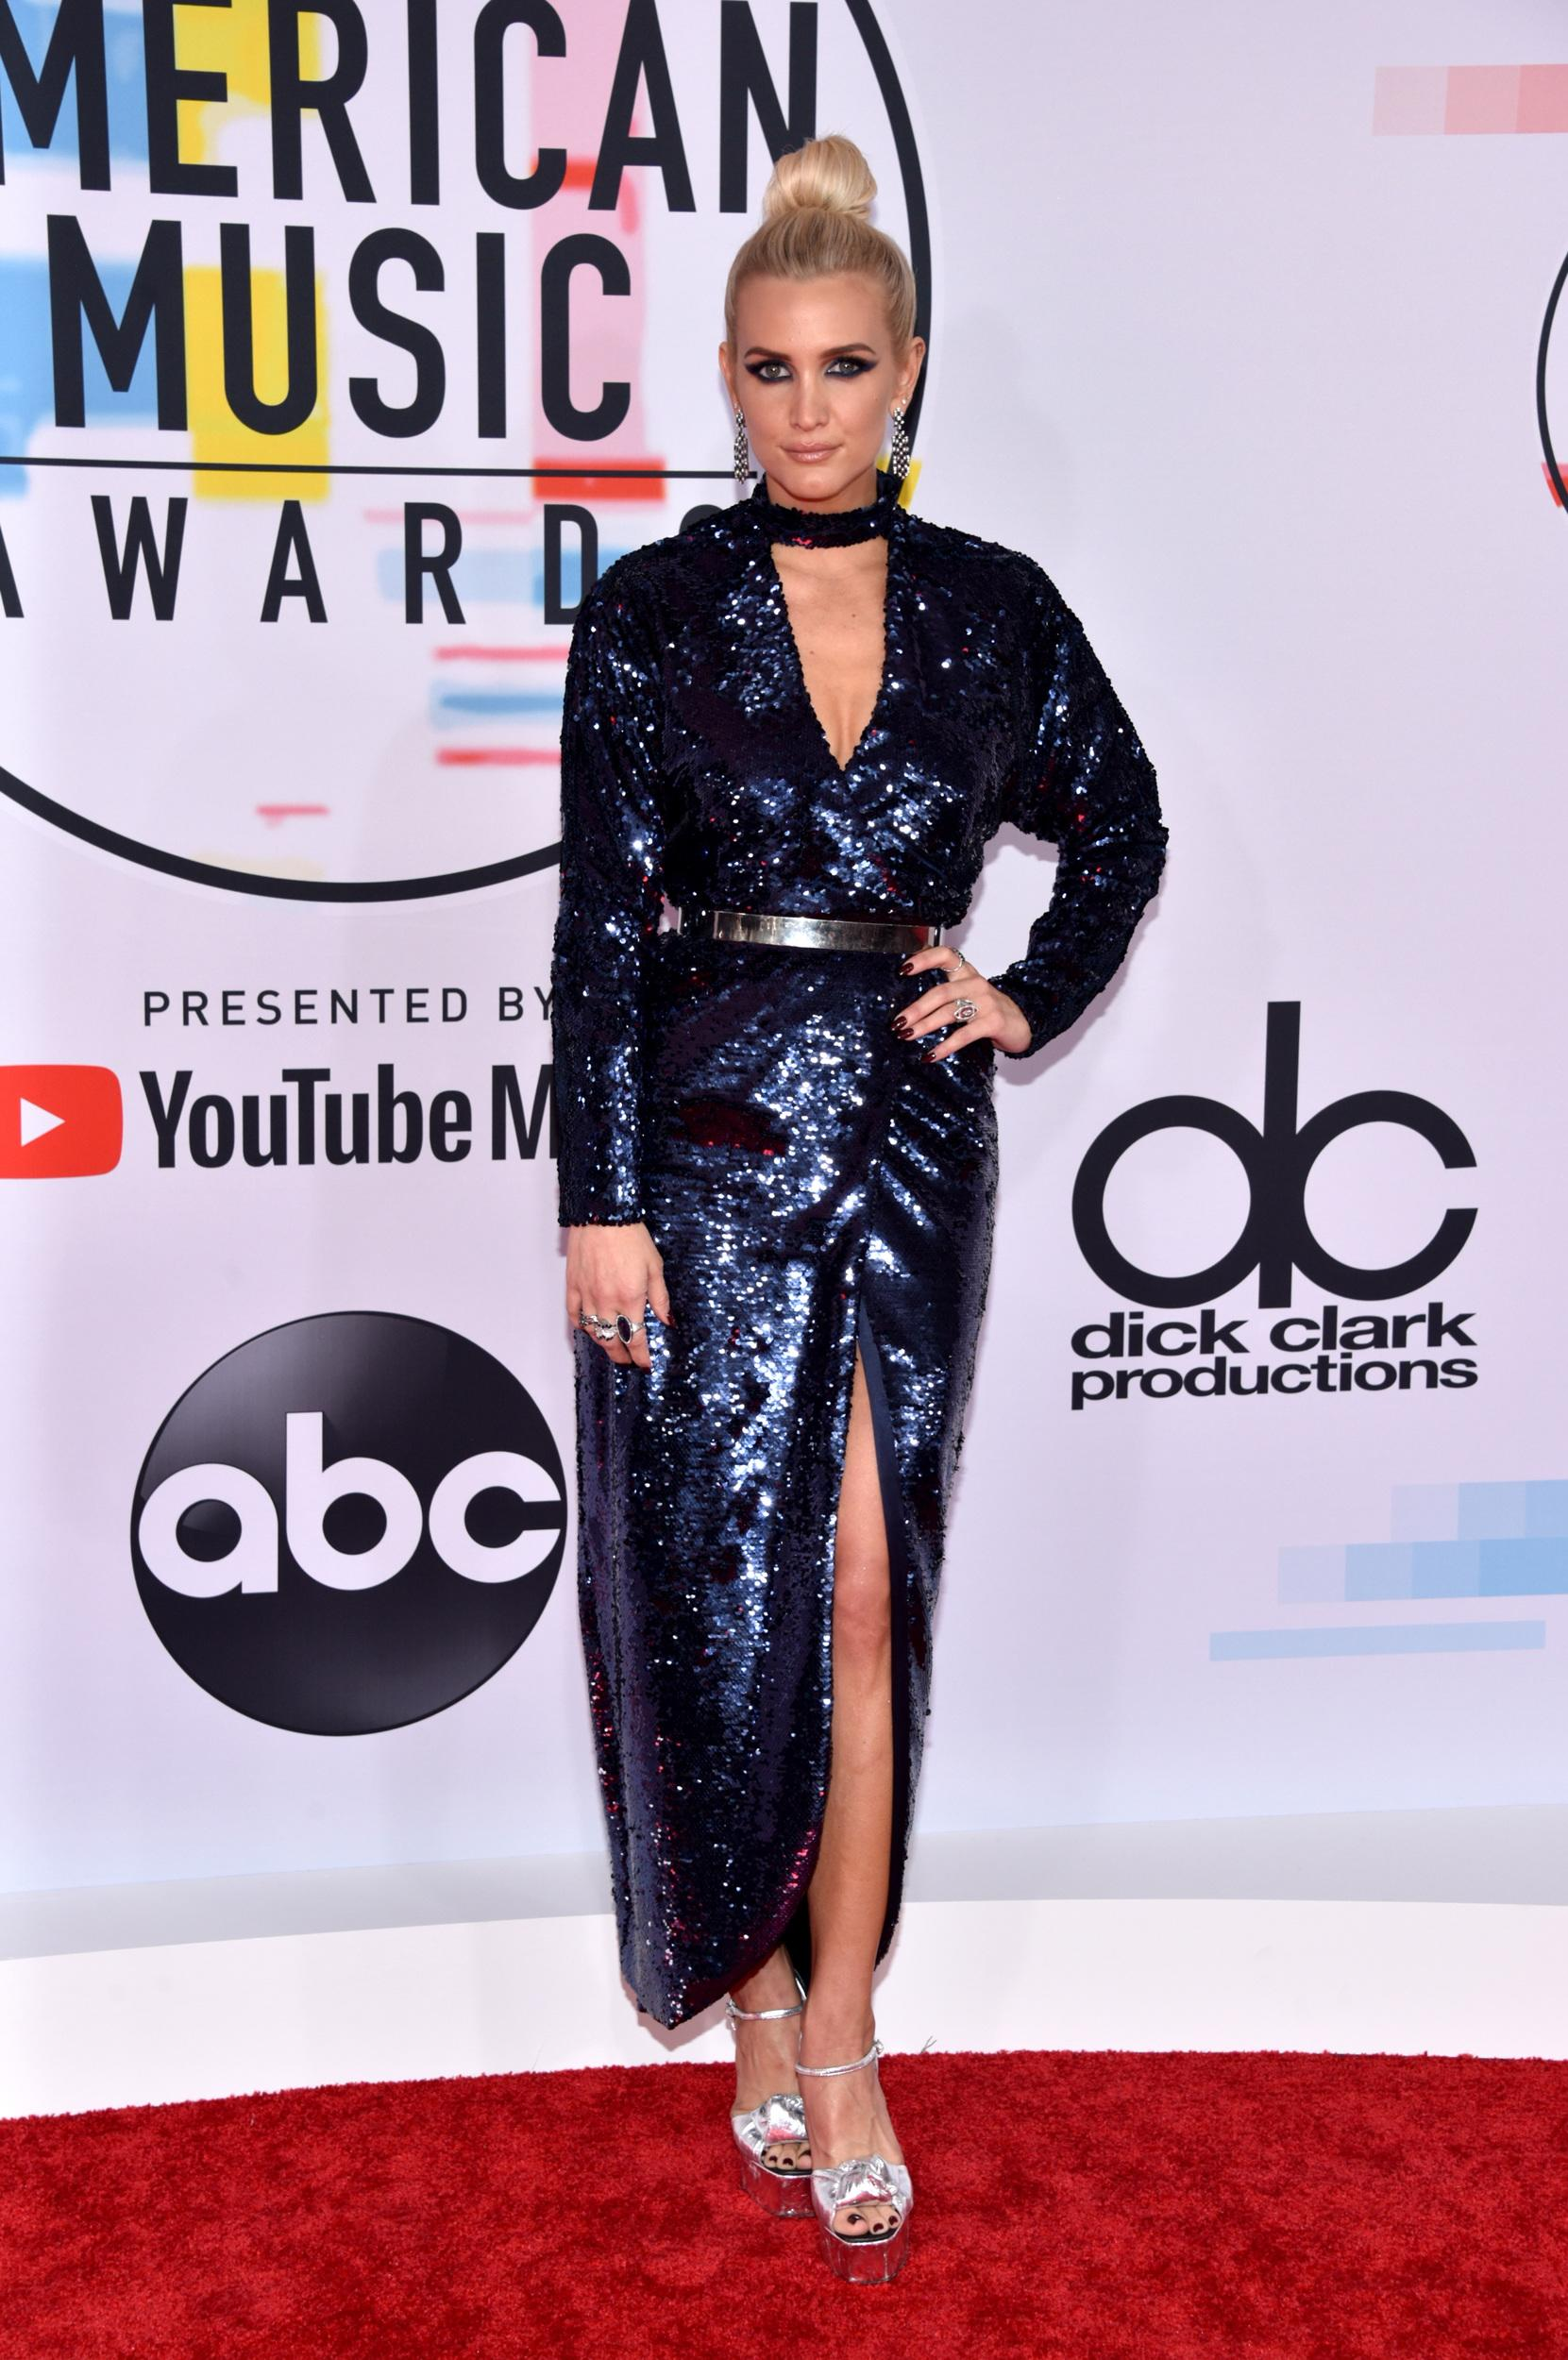 LOS ANGELES, CA - OCTOBER 09: Ashlee Simpson attends the 2018 American Music Awards at Microsoft Theater on October 9, 2018 in Los Angeles, California. (Photo by John Shearer/Getty Images For dcp)